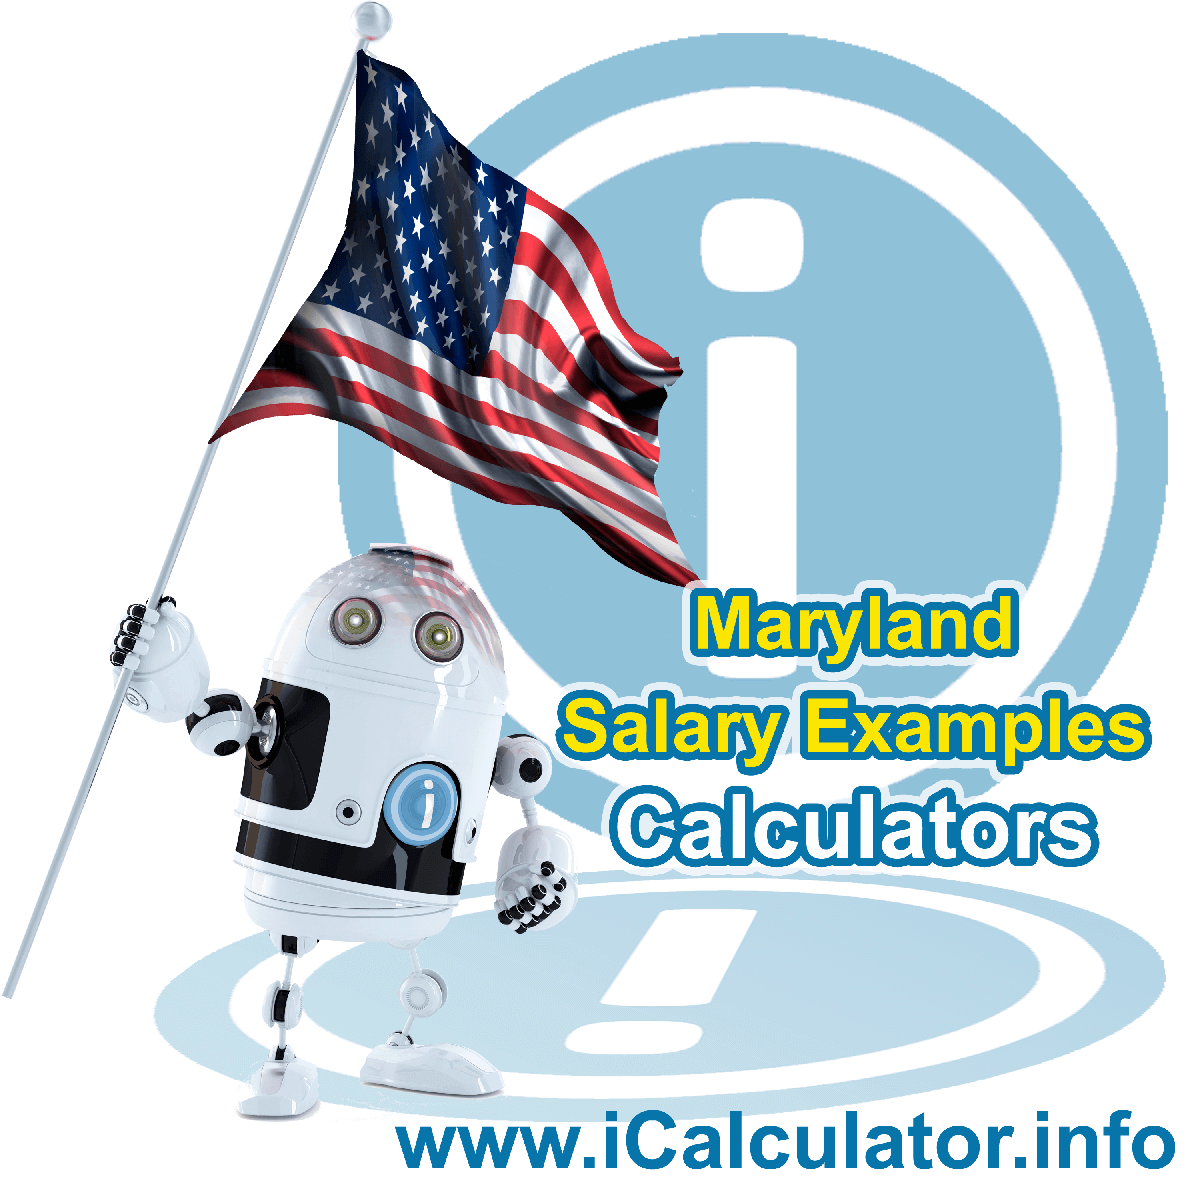 Maryland Salary Example for $260.00 in 2020 | iCalculator | $260.00 salary example for employee and employer paying Maryland State tincome taxes. Detailed salary after tax calculation including Maryland State Tax, Federal State Tax, Medicare Deductions, Social Security, Capital Gains and other income tax and salary deductions complete with supporting Maryland state tax tables